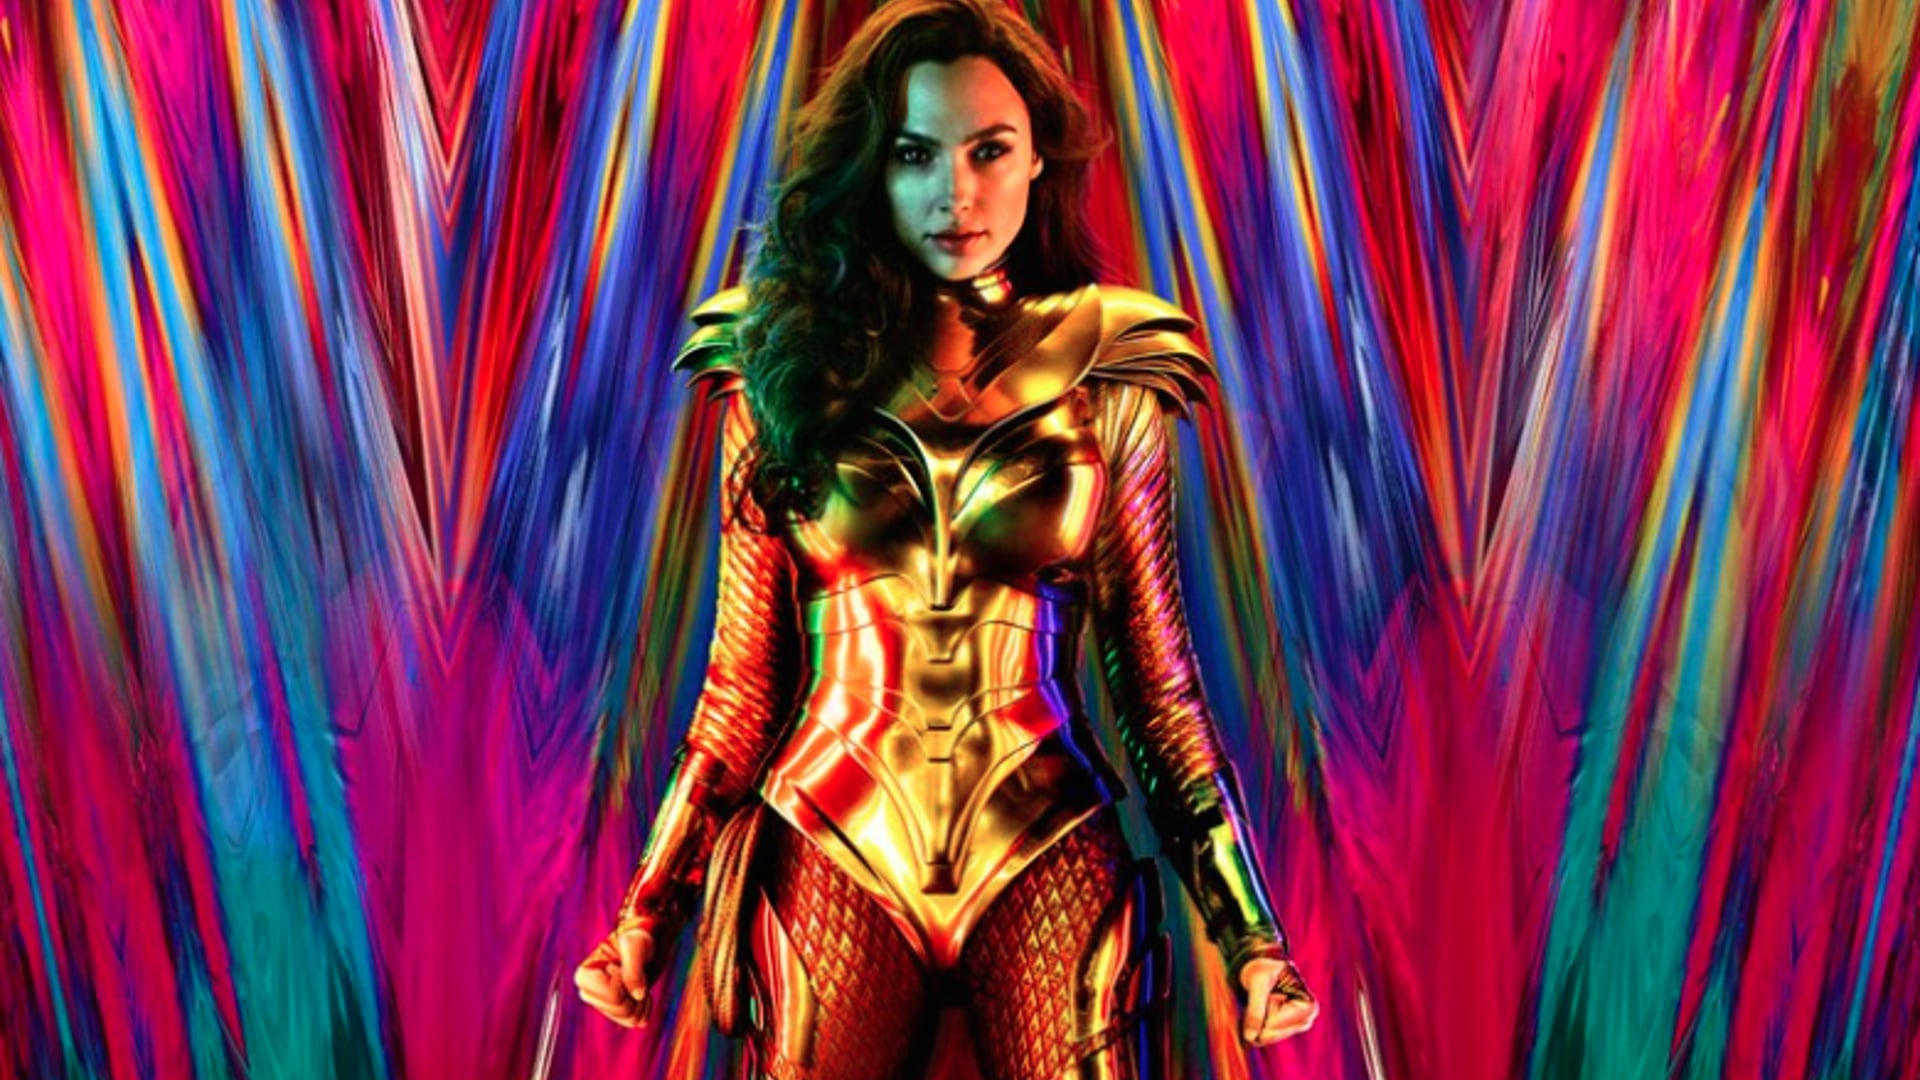 The Gig: Wonder Woman 1984 Review